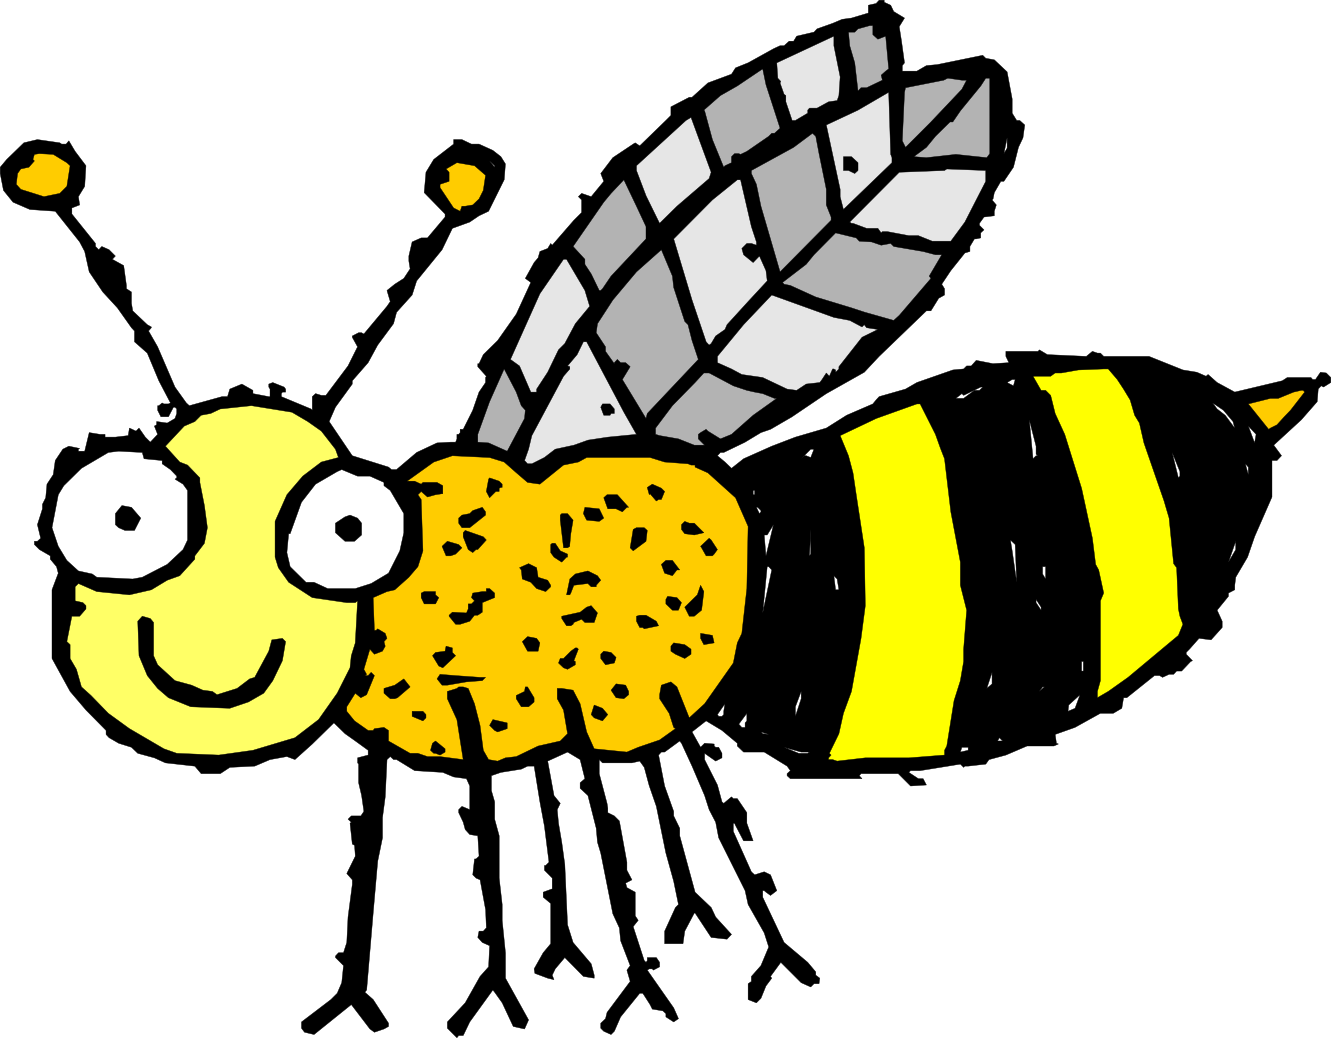 Hornet clipart mascot. Free cute cliparts download